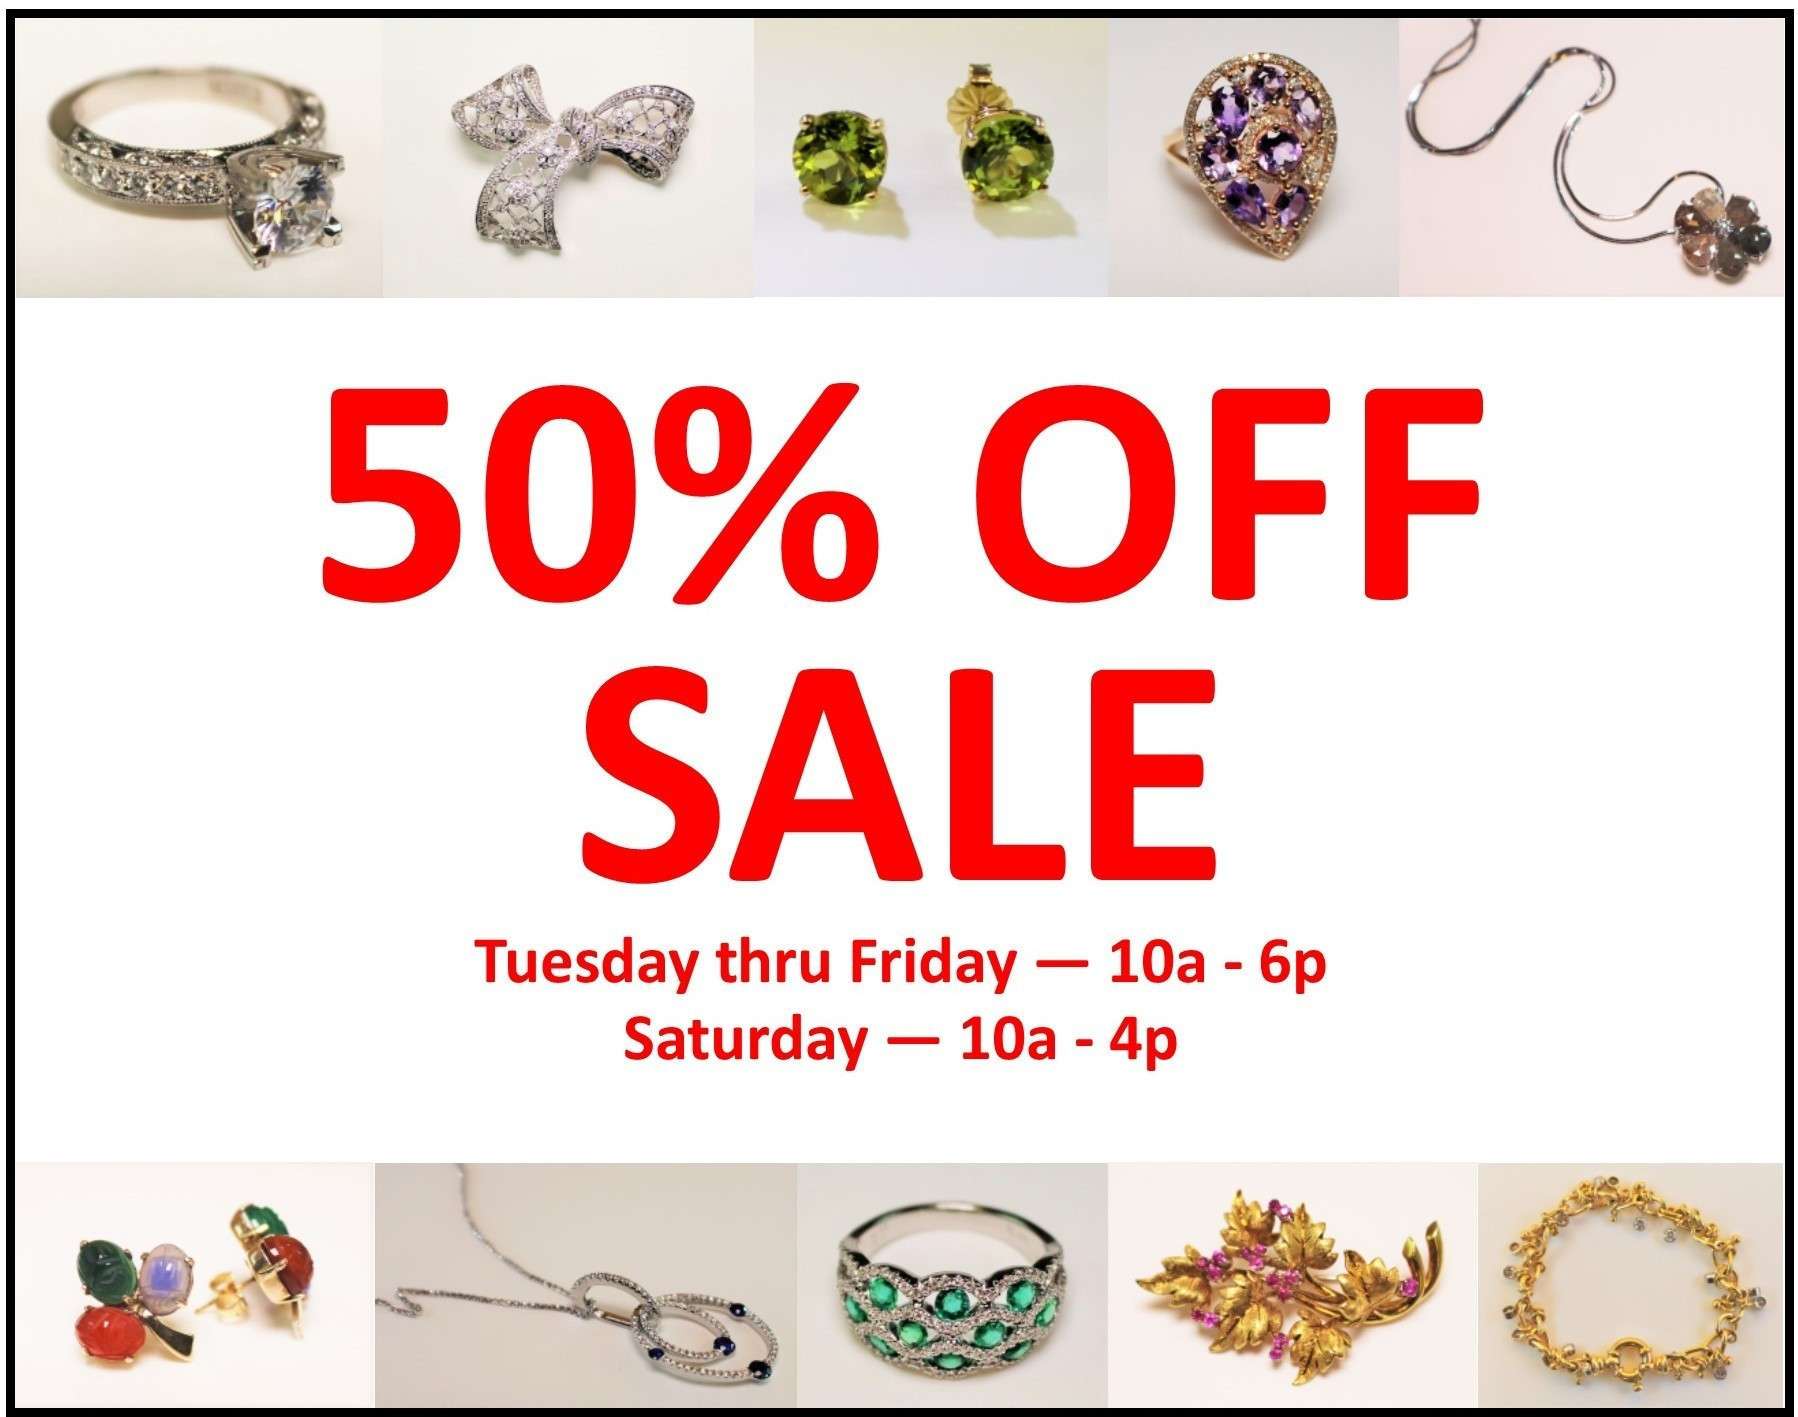 You Don't Want To Miss This Sale!